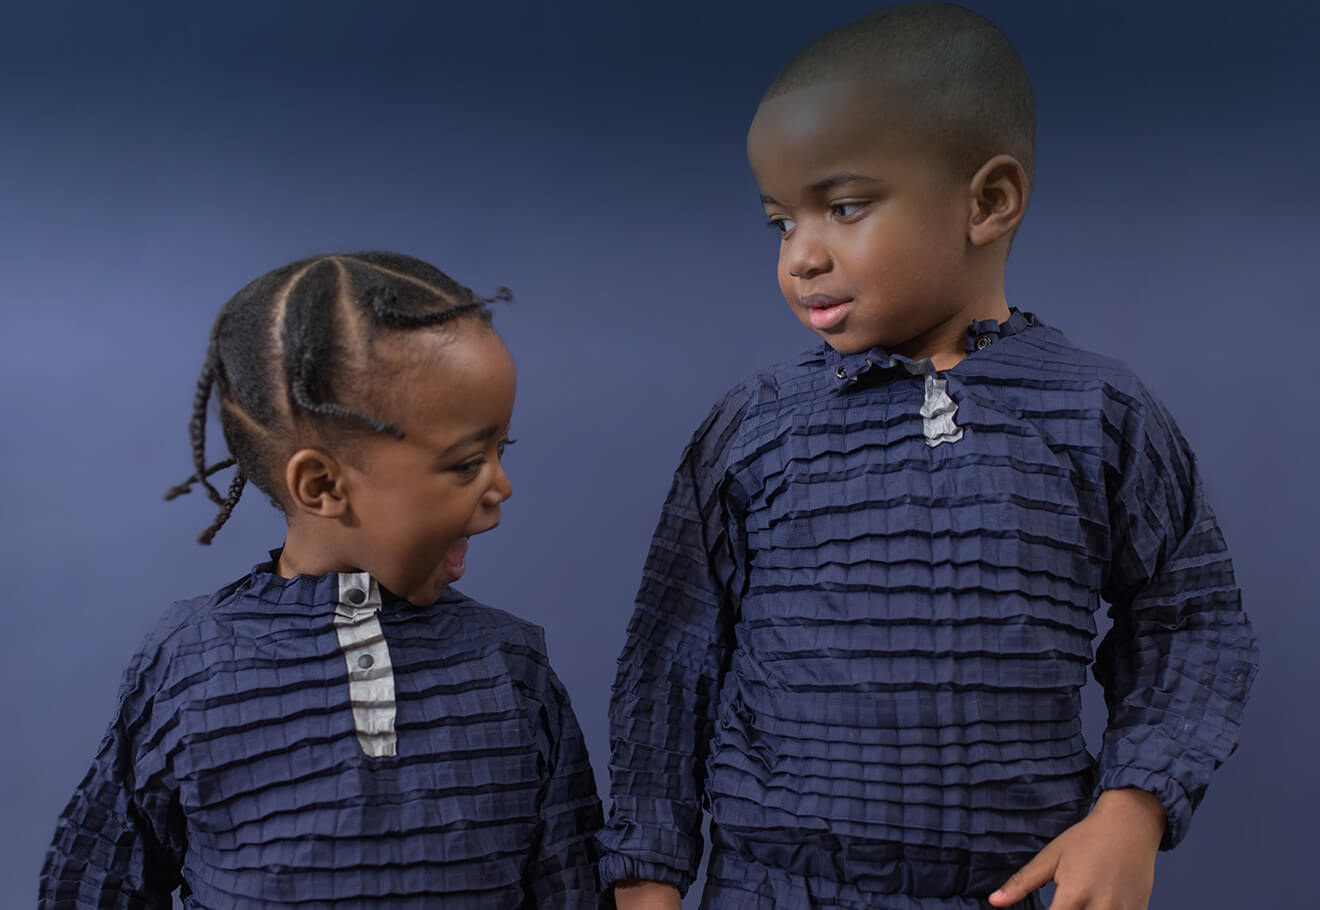 Petit Pli clothes that are engineered to grow with children